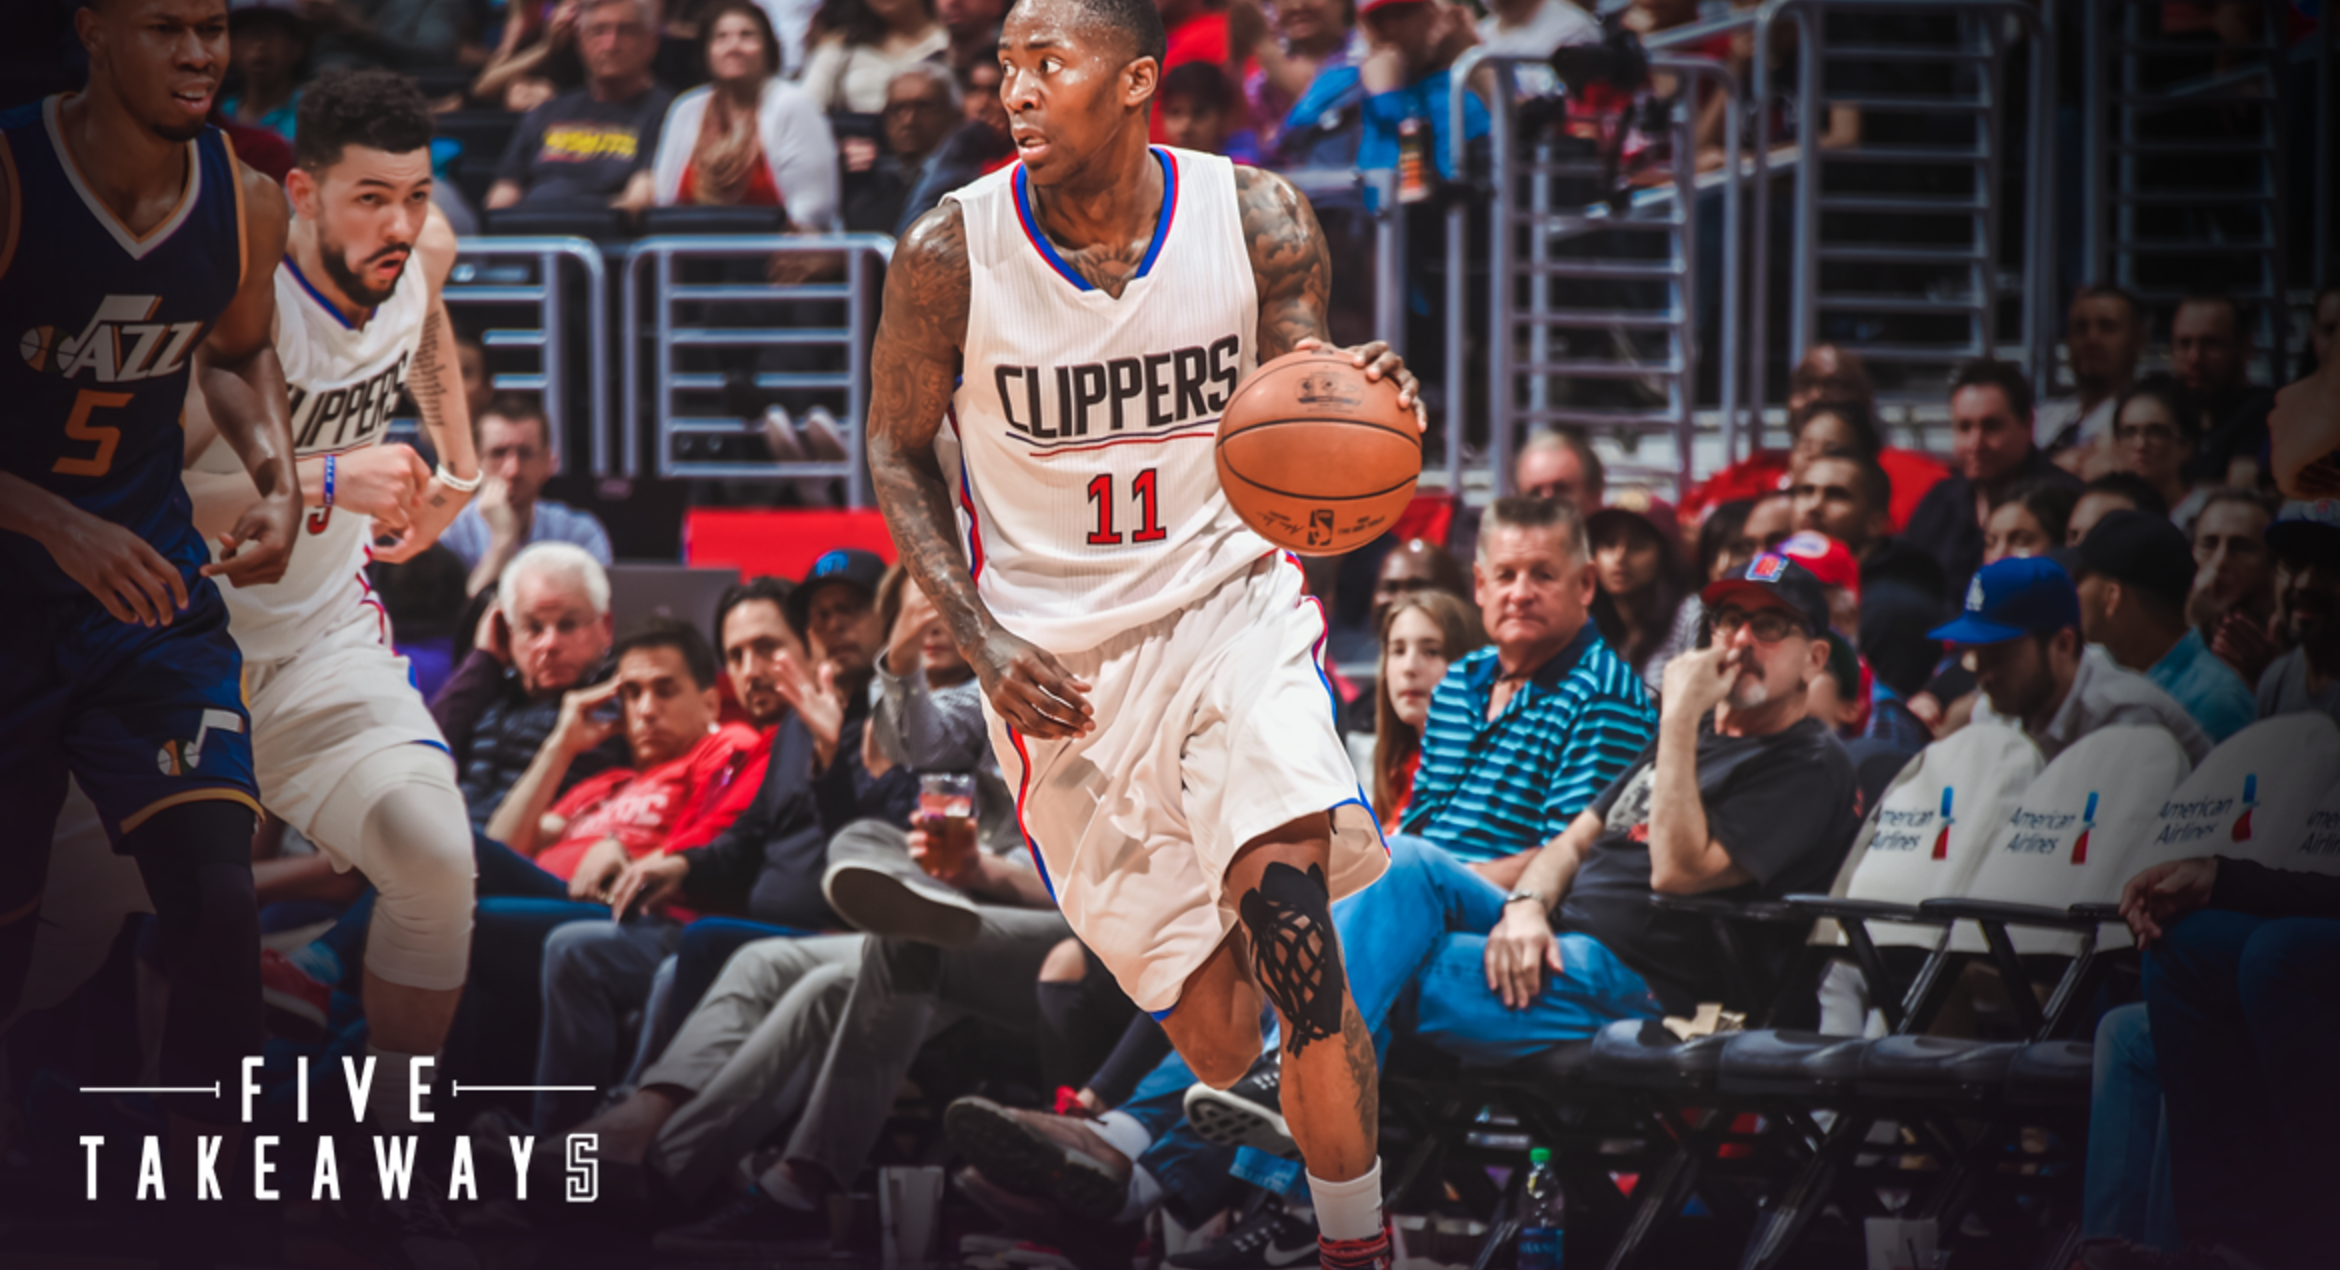 5 Takeaways from the Clippers' Critical Win Over the Utah Jazz